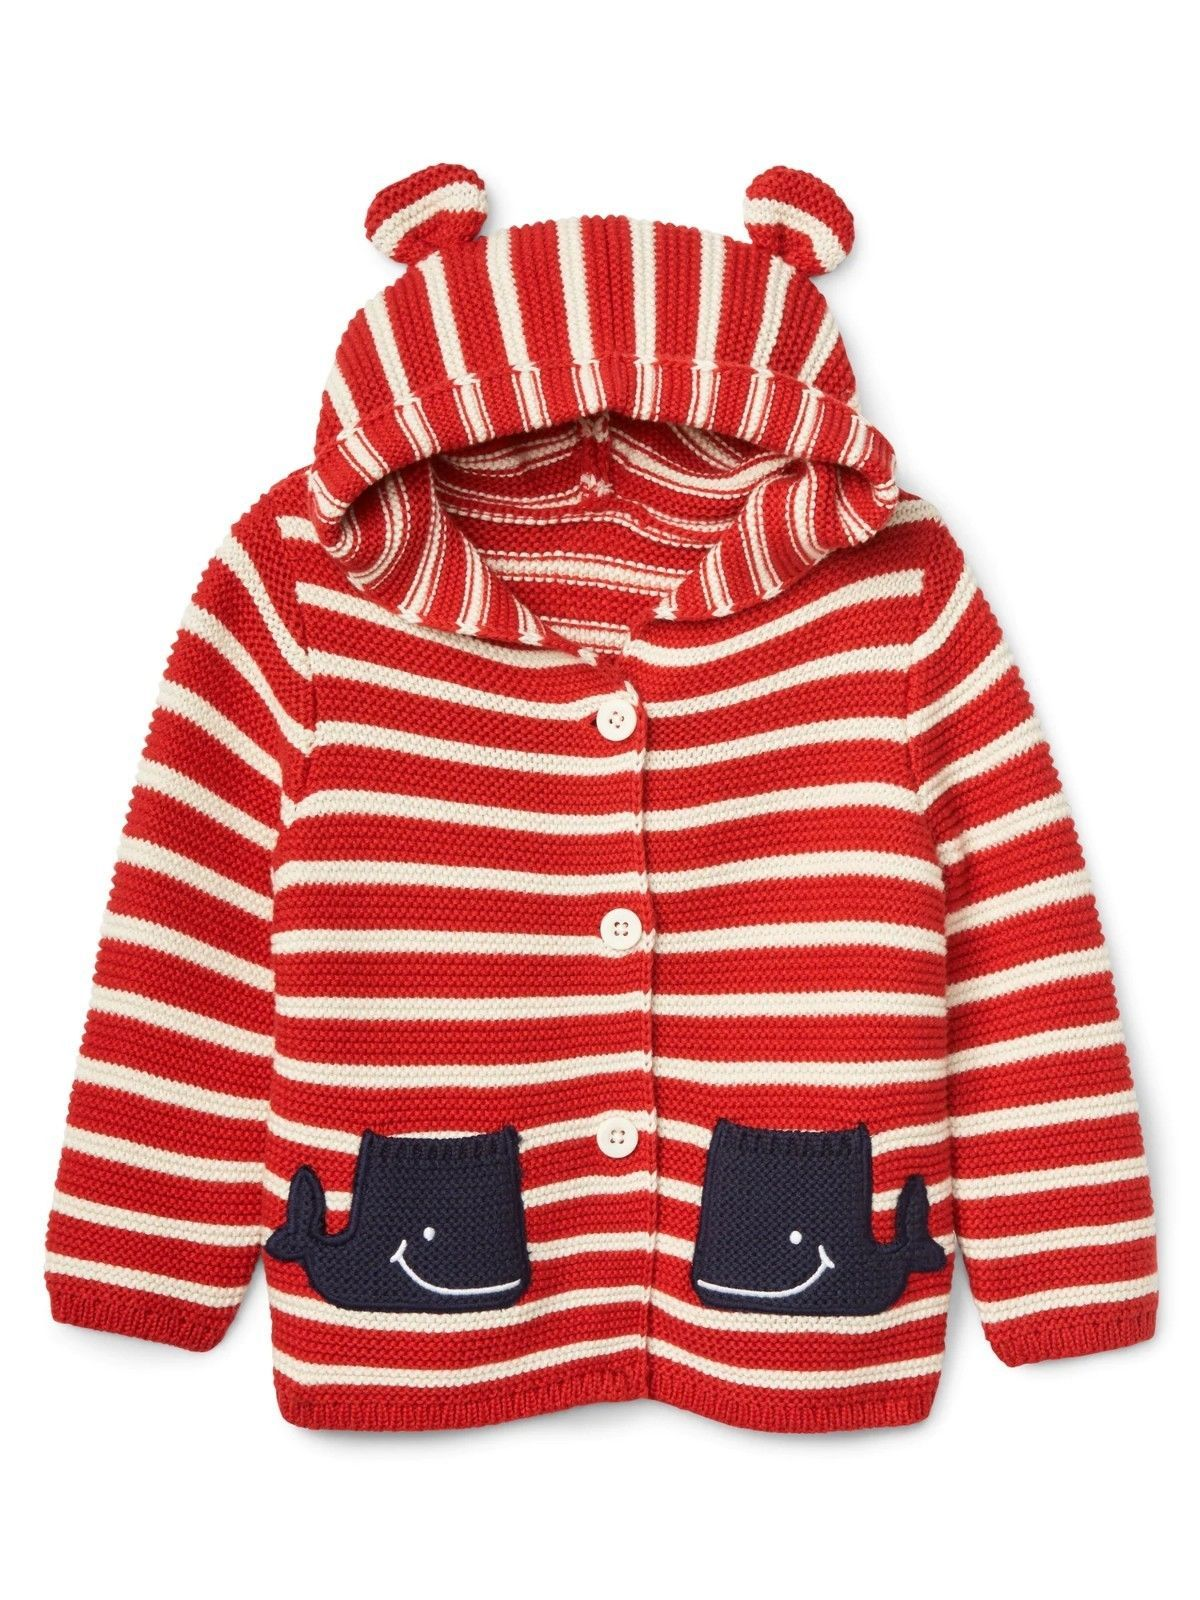 dd154cc2cde00 New Baby GAP Garter Hoodie Sweater Striped White and Red (Size US 0-3 mo)